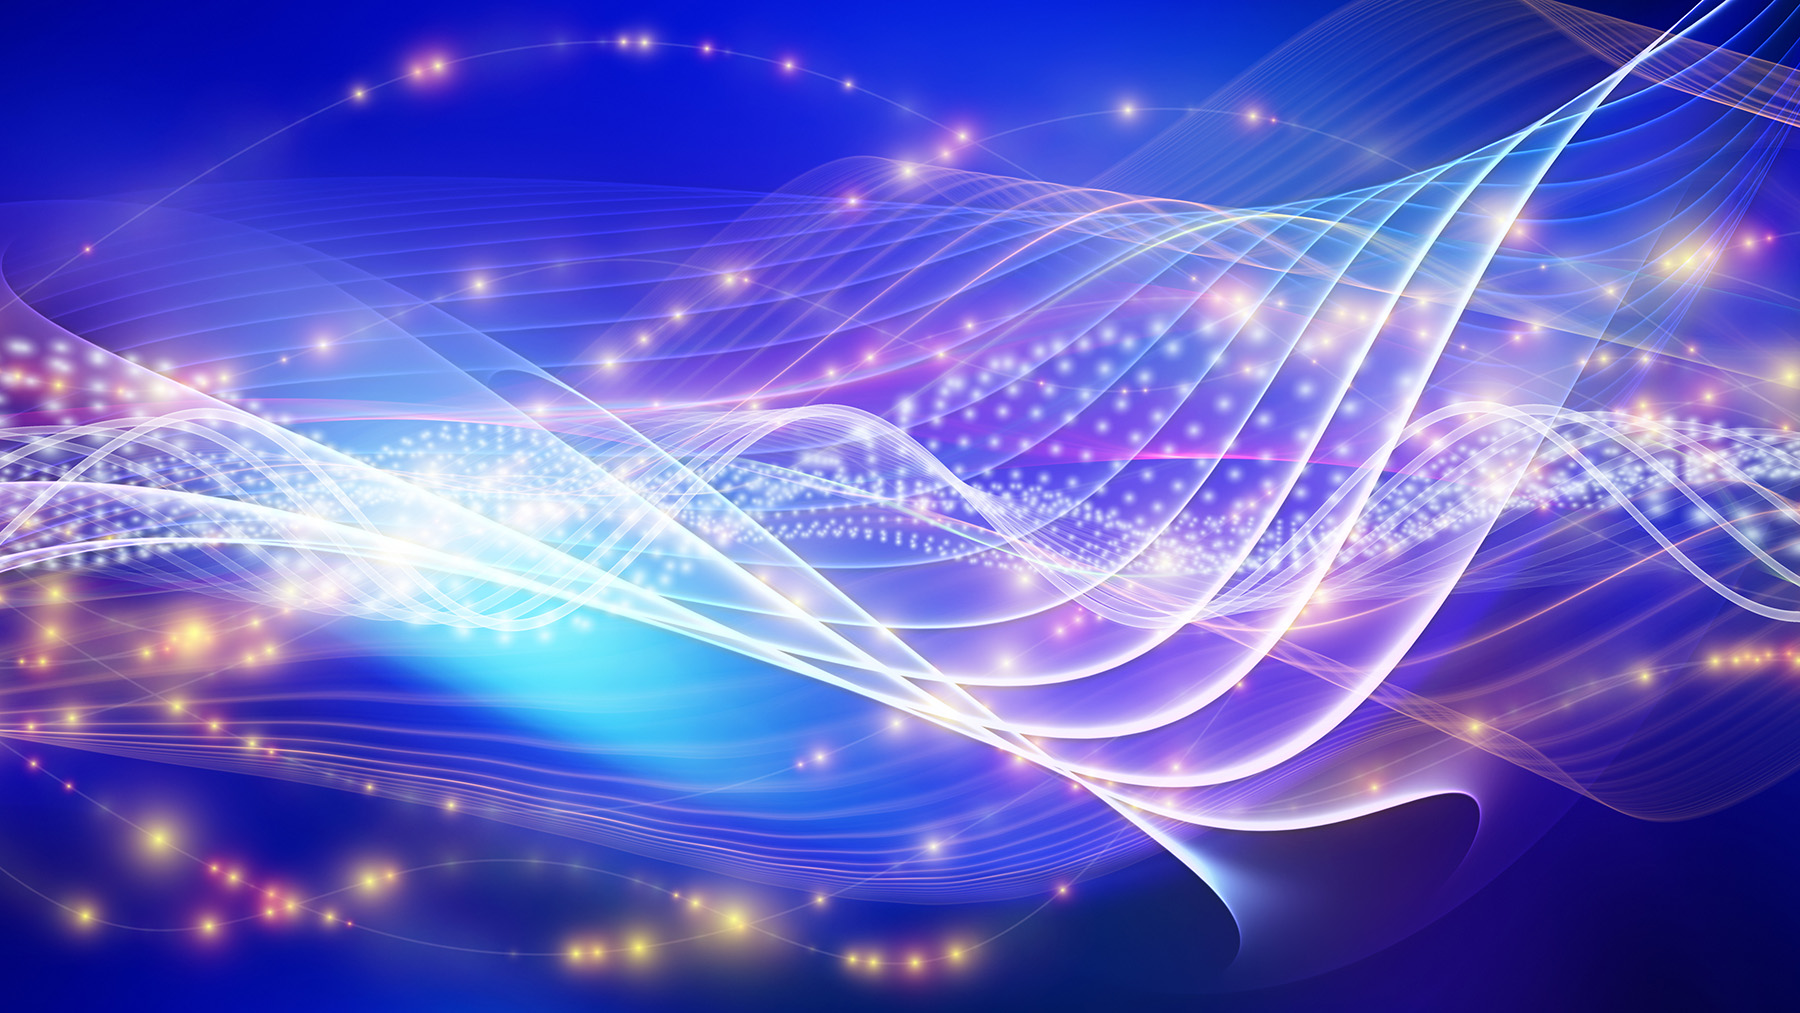 Full-service fiber grid: network convergence in the 5G and cloud era